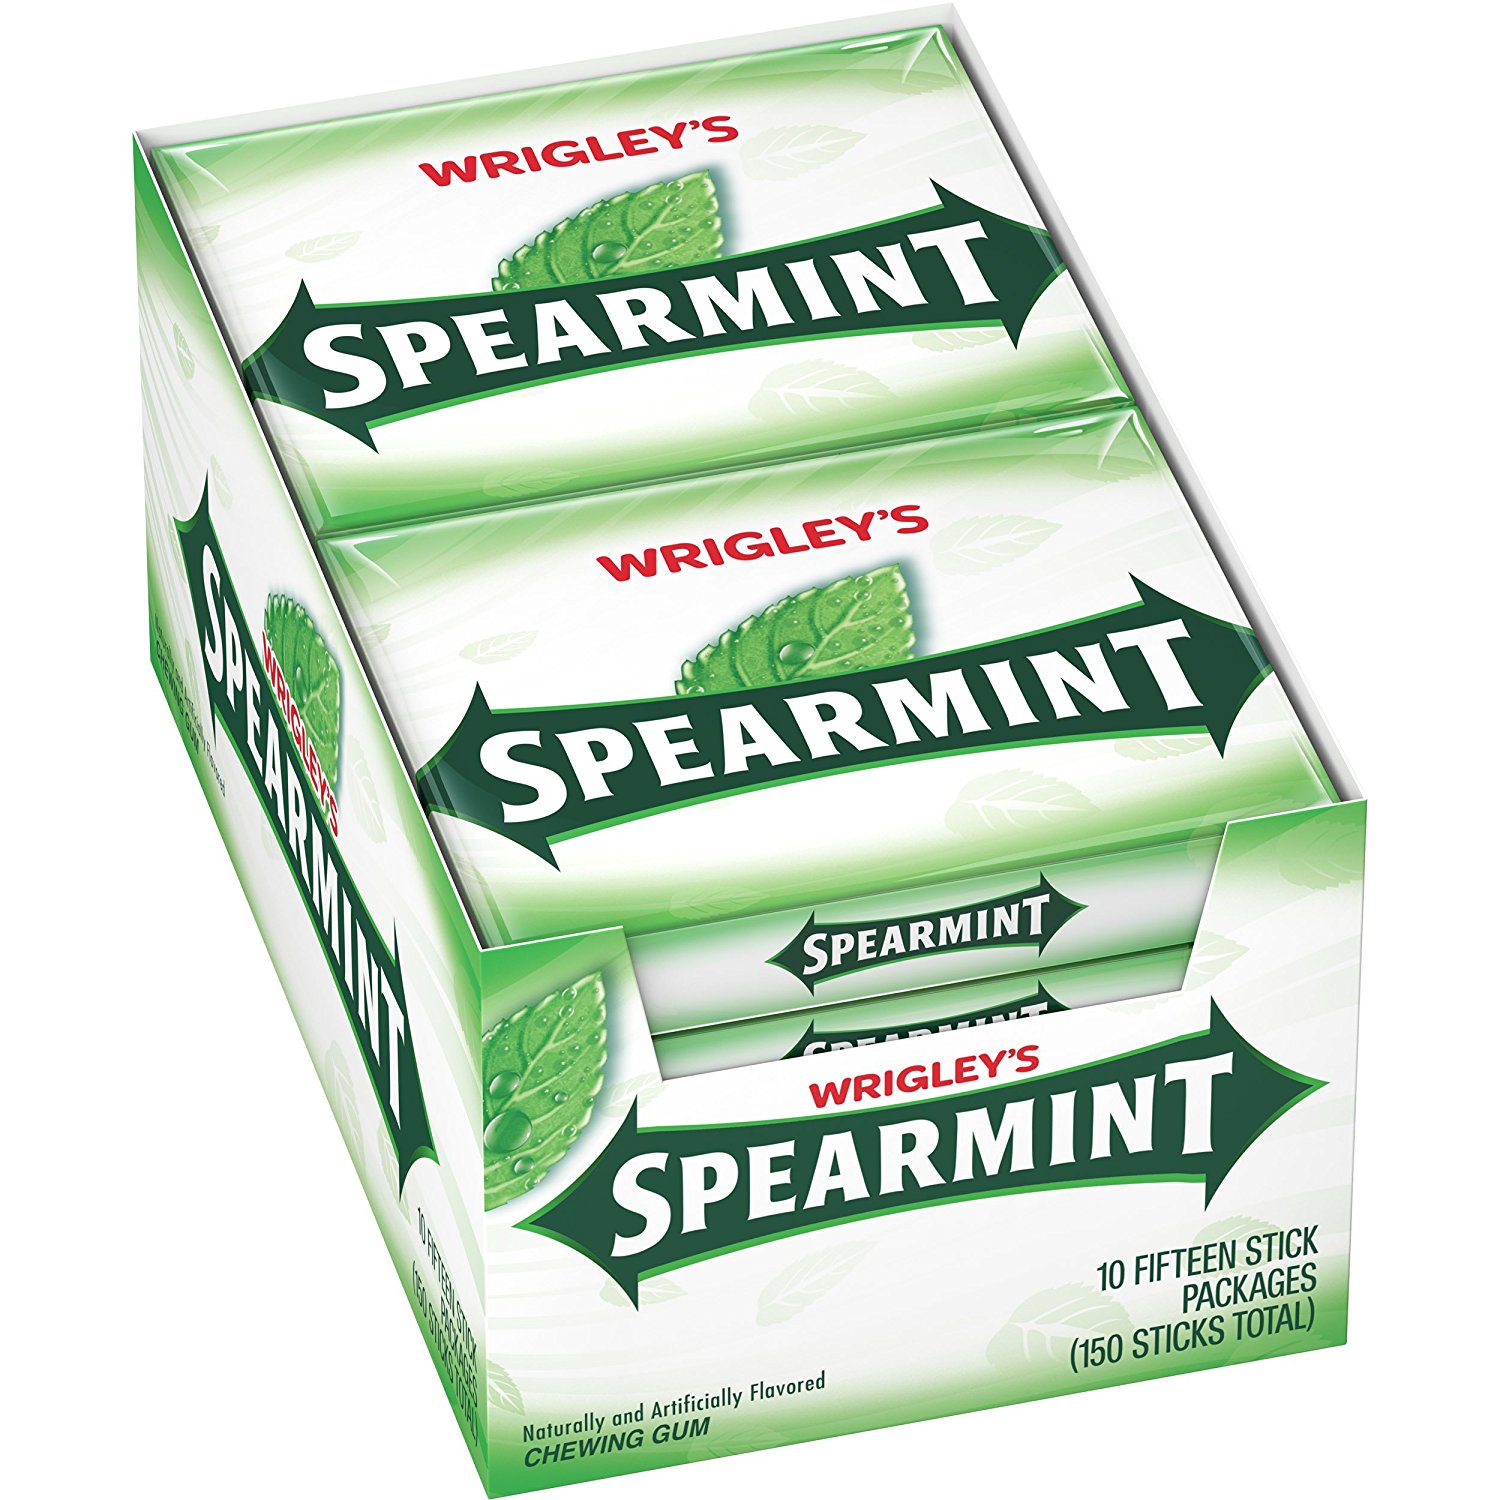 Wrigleys Spearmint Chewing Gum, 3 x 10 Packs Each Contains 15 Count Sticks - 3 Boxes